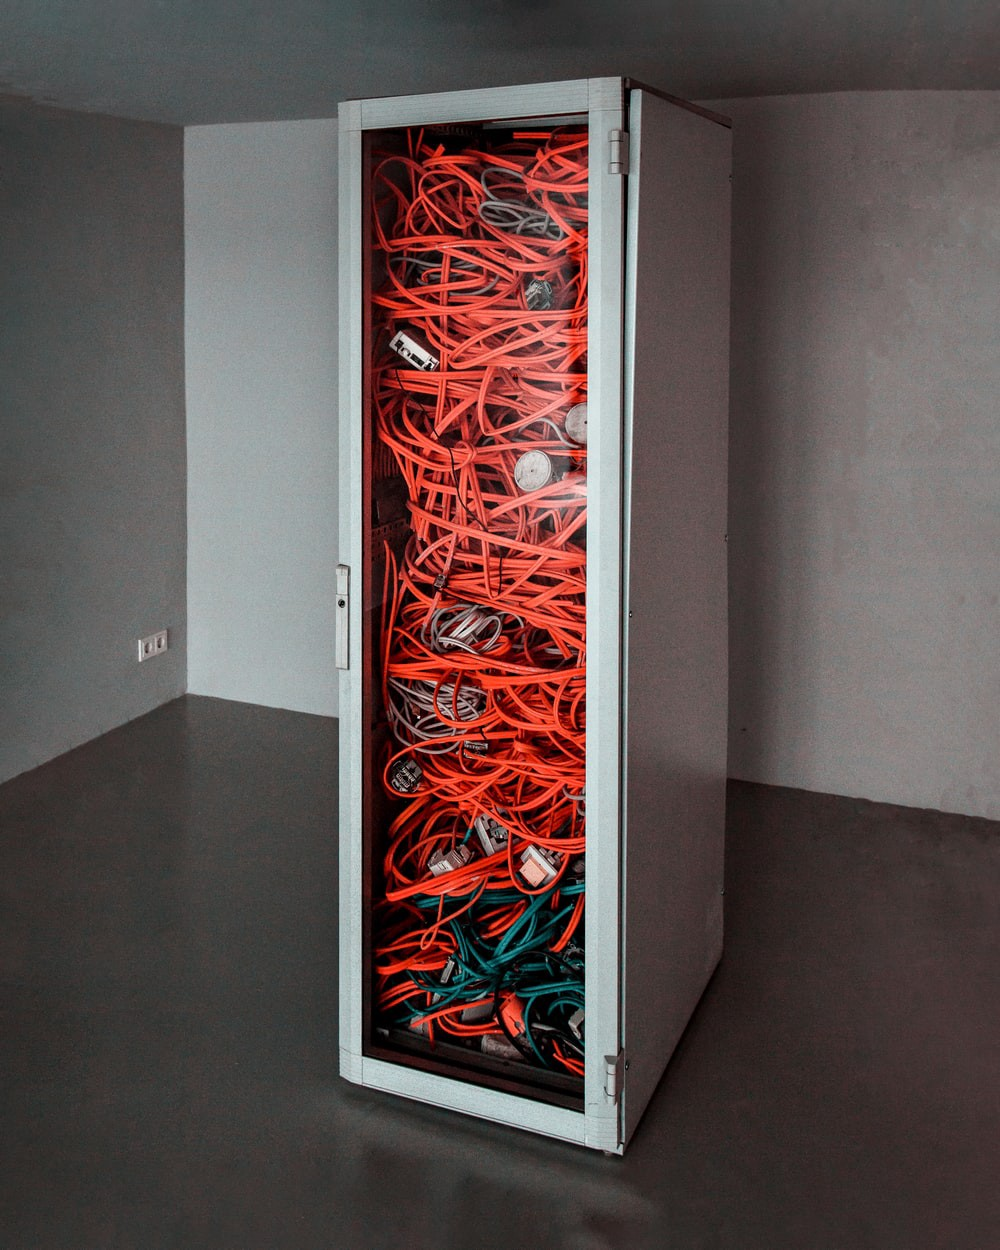 image with network cables